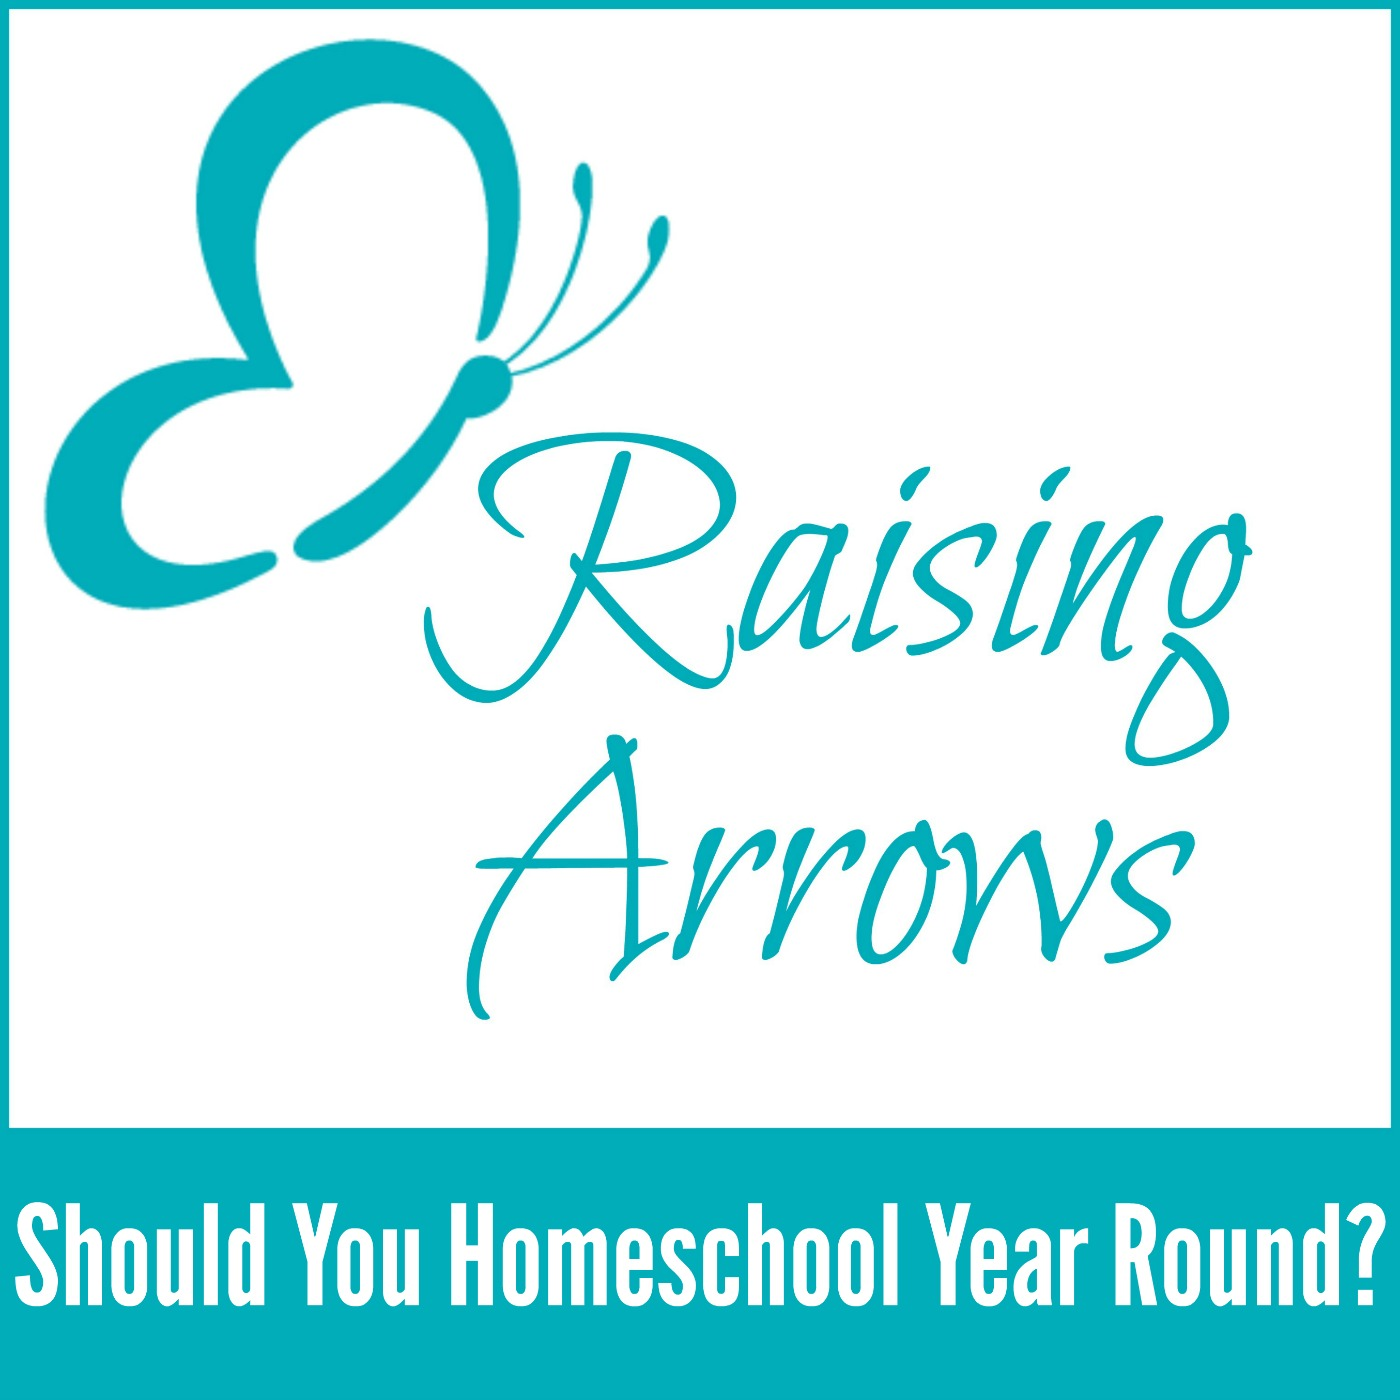 007 Podcast – Should You Homeschool Year Round?